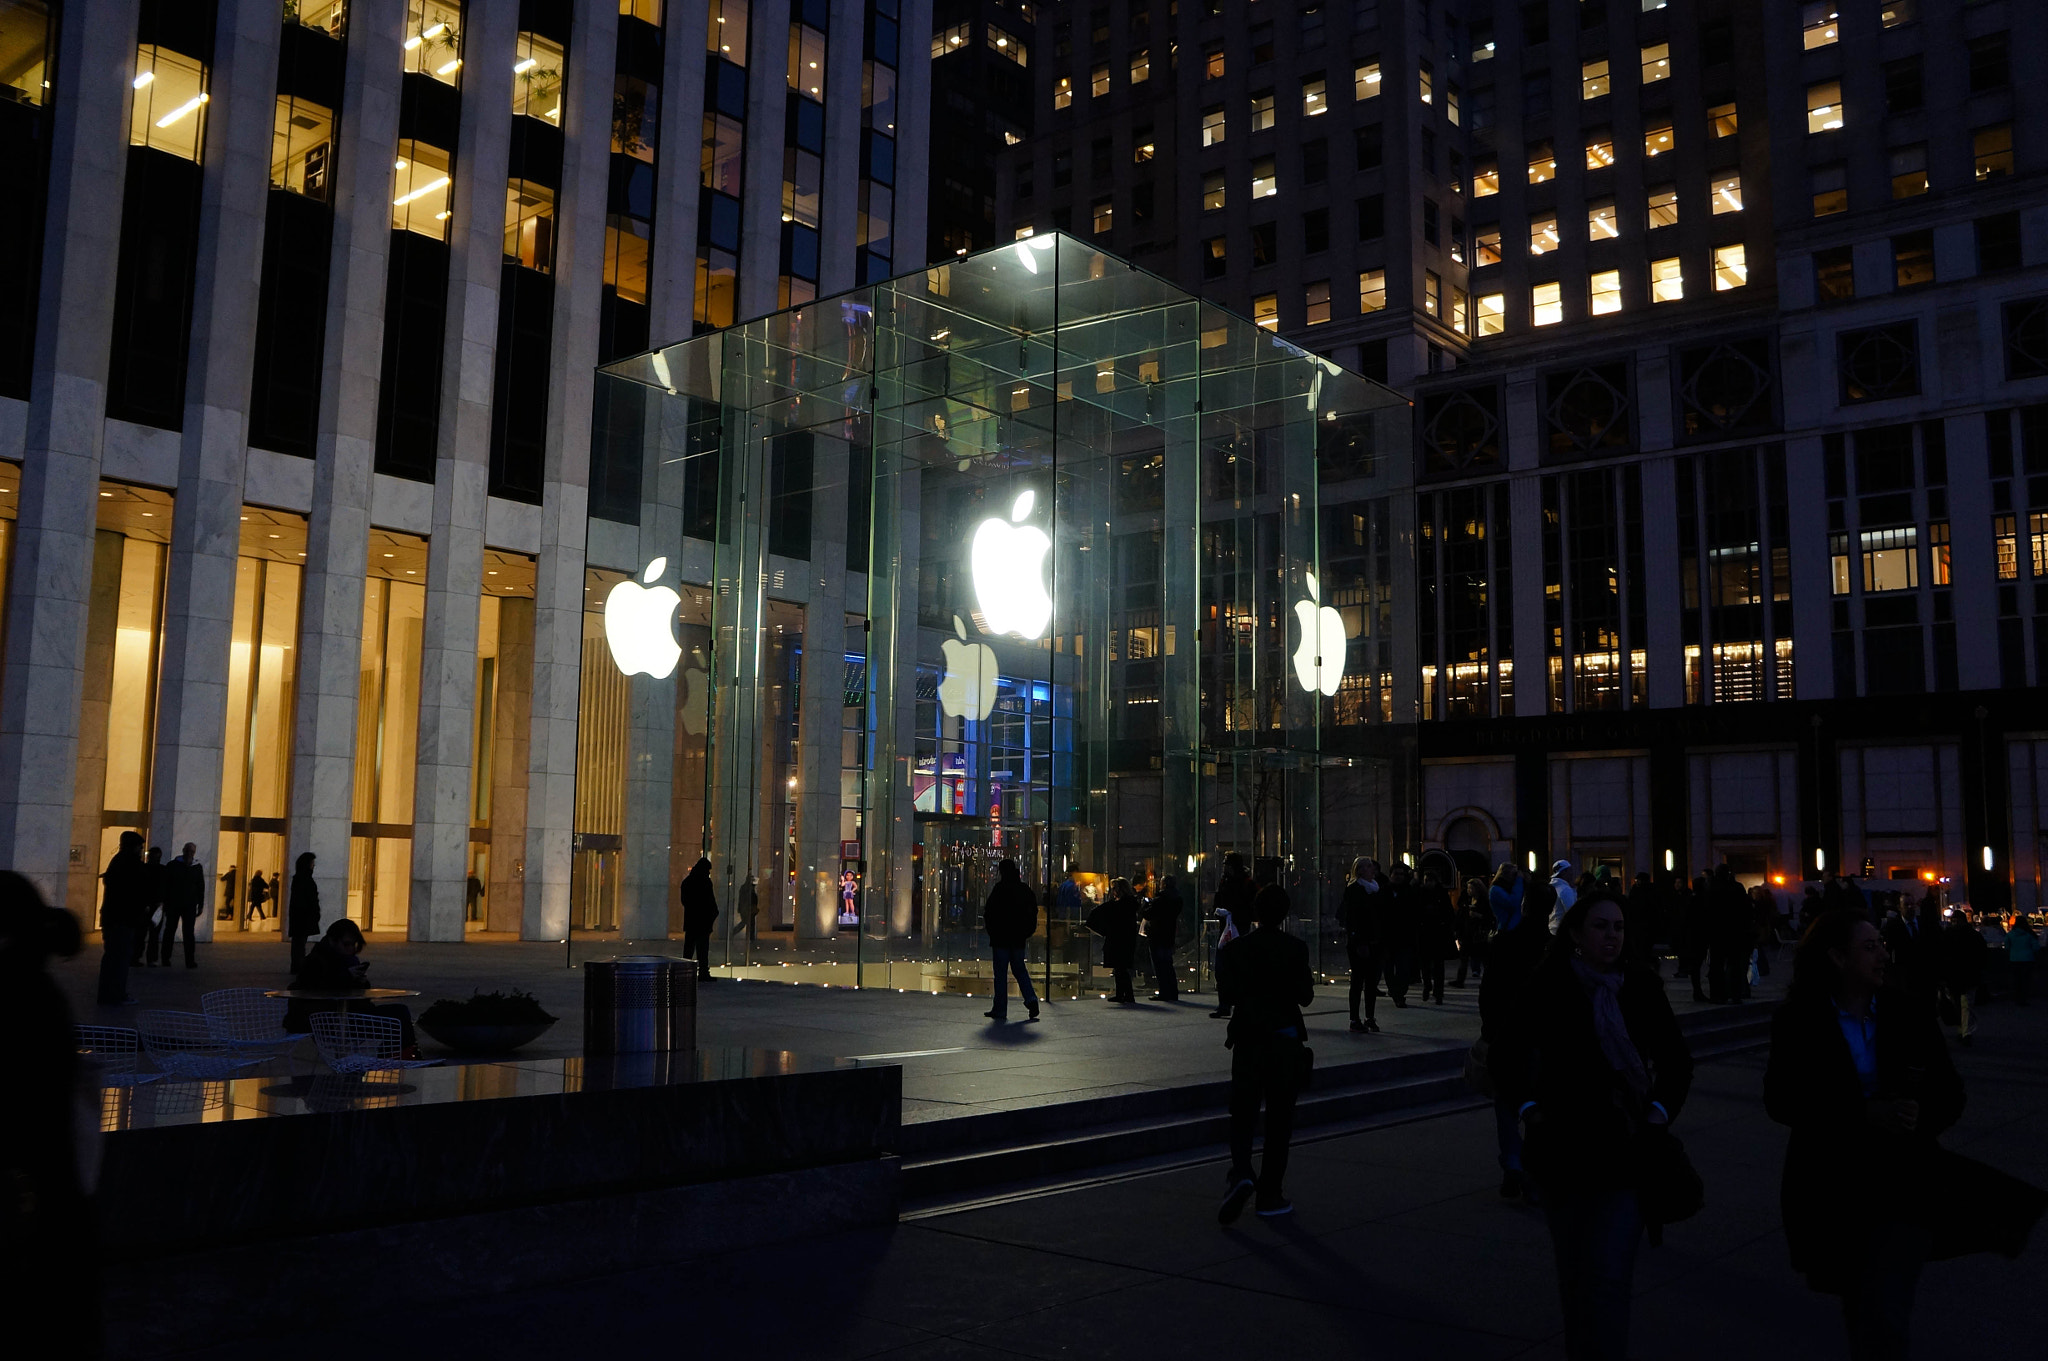 Photograph Apple Store, Fifth Avenue at Twilight by Peter Wu on 500px